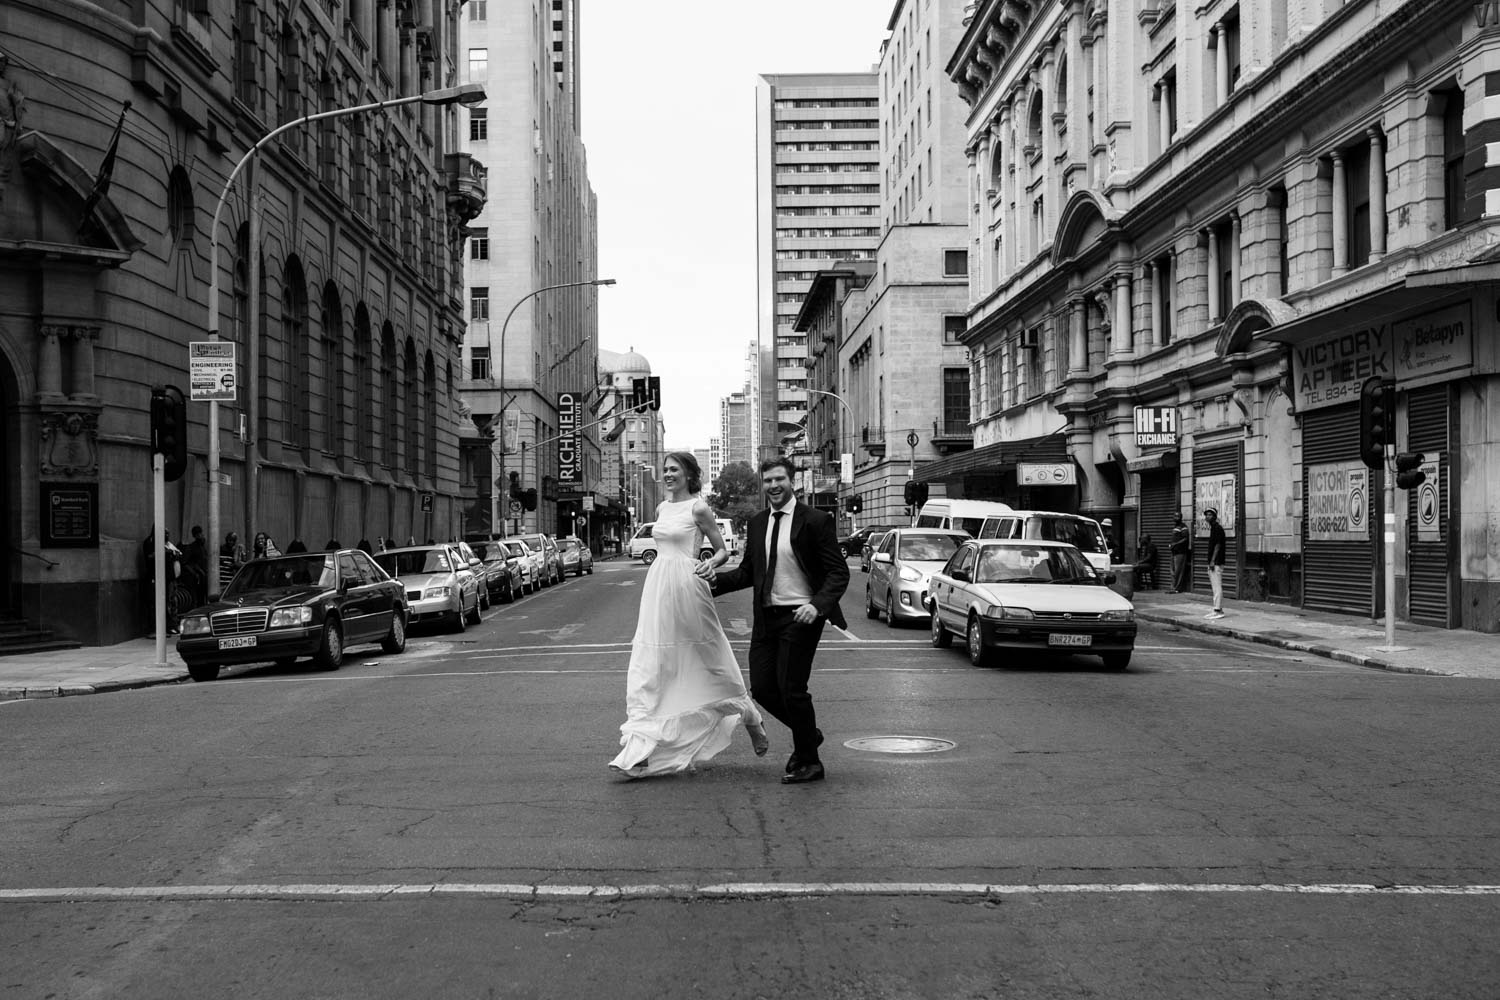 Bride And Groom Run Down Street In Victoria, Vancouver Island